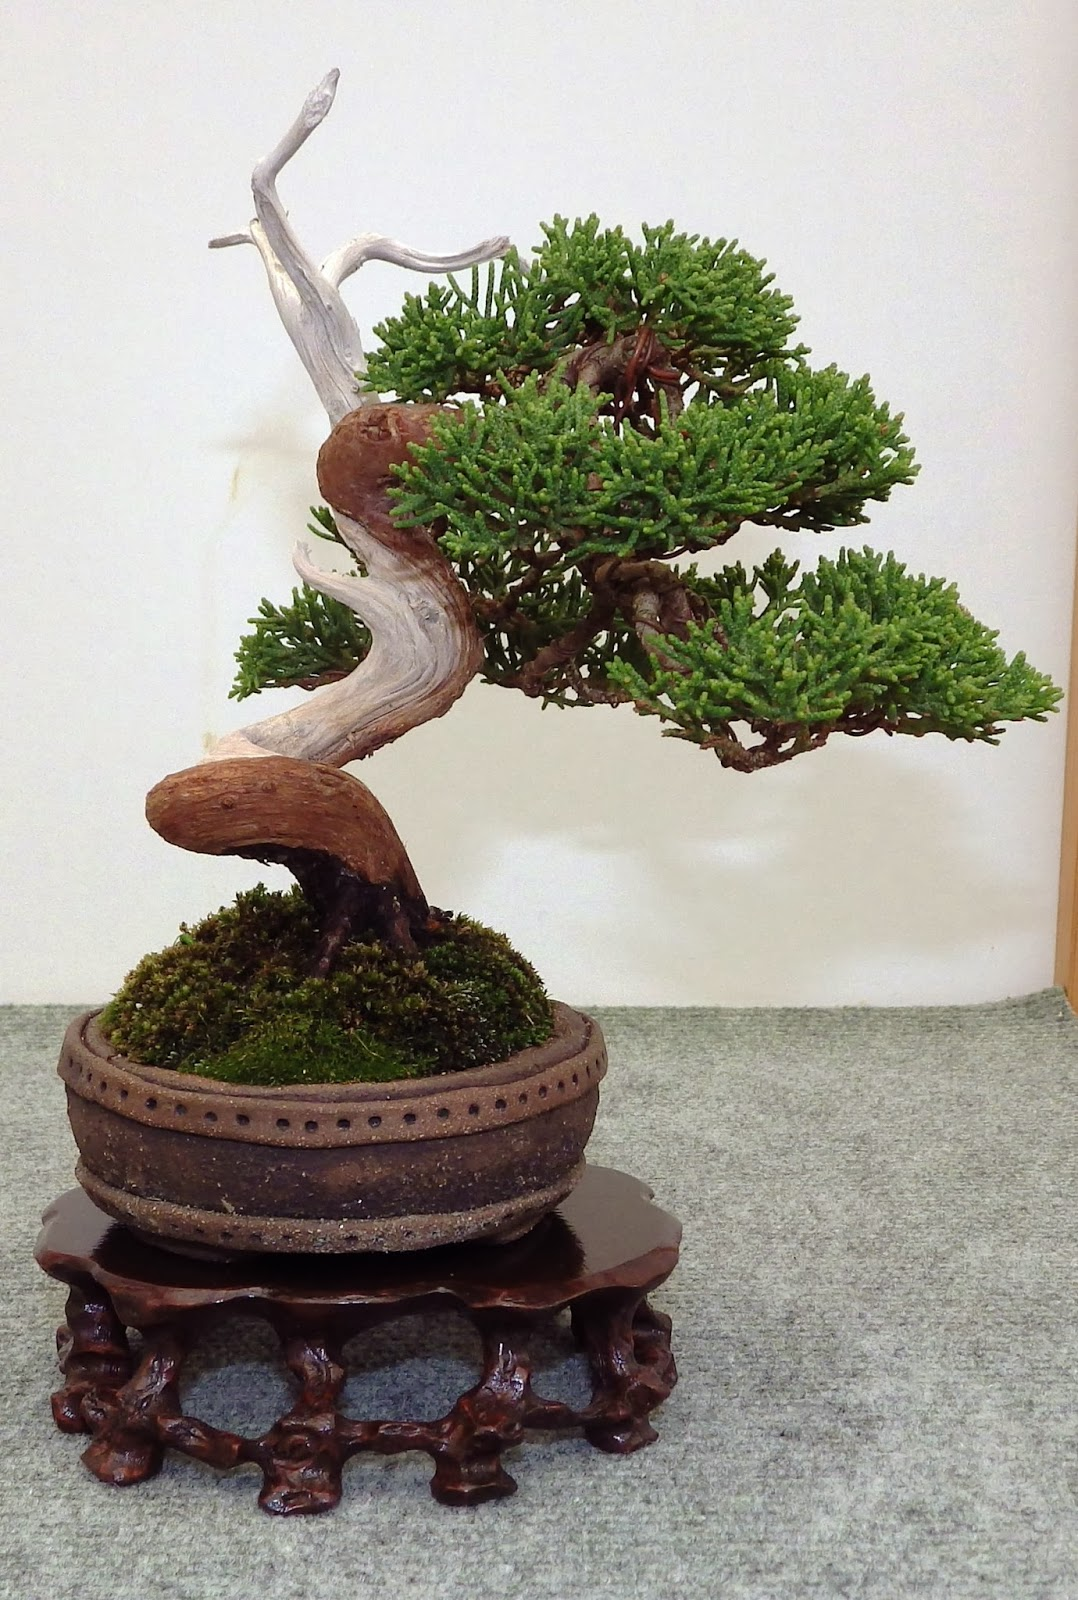 Bespoke Bonsai Stands March 2014